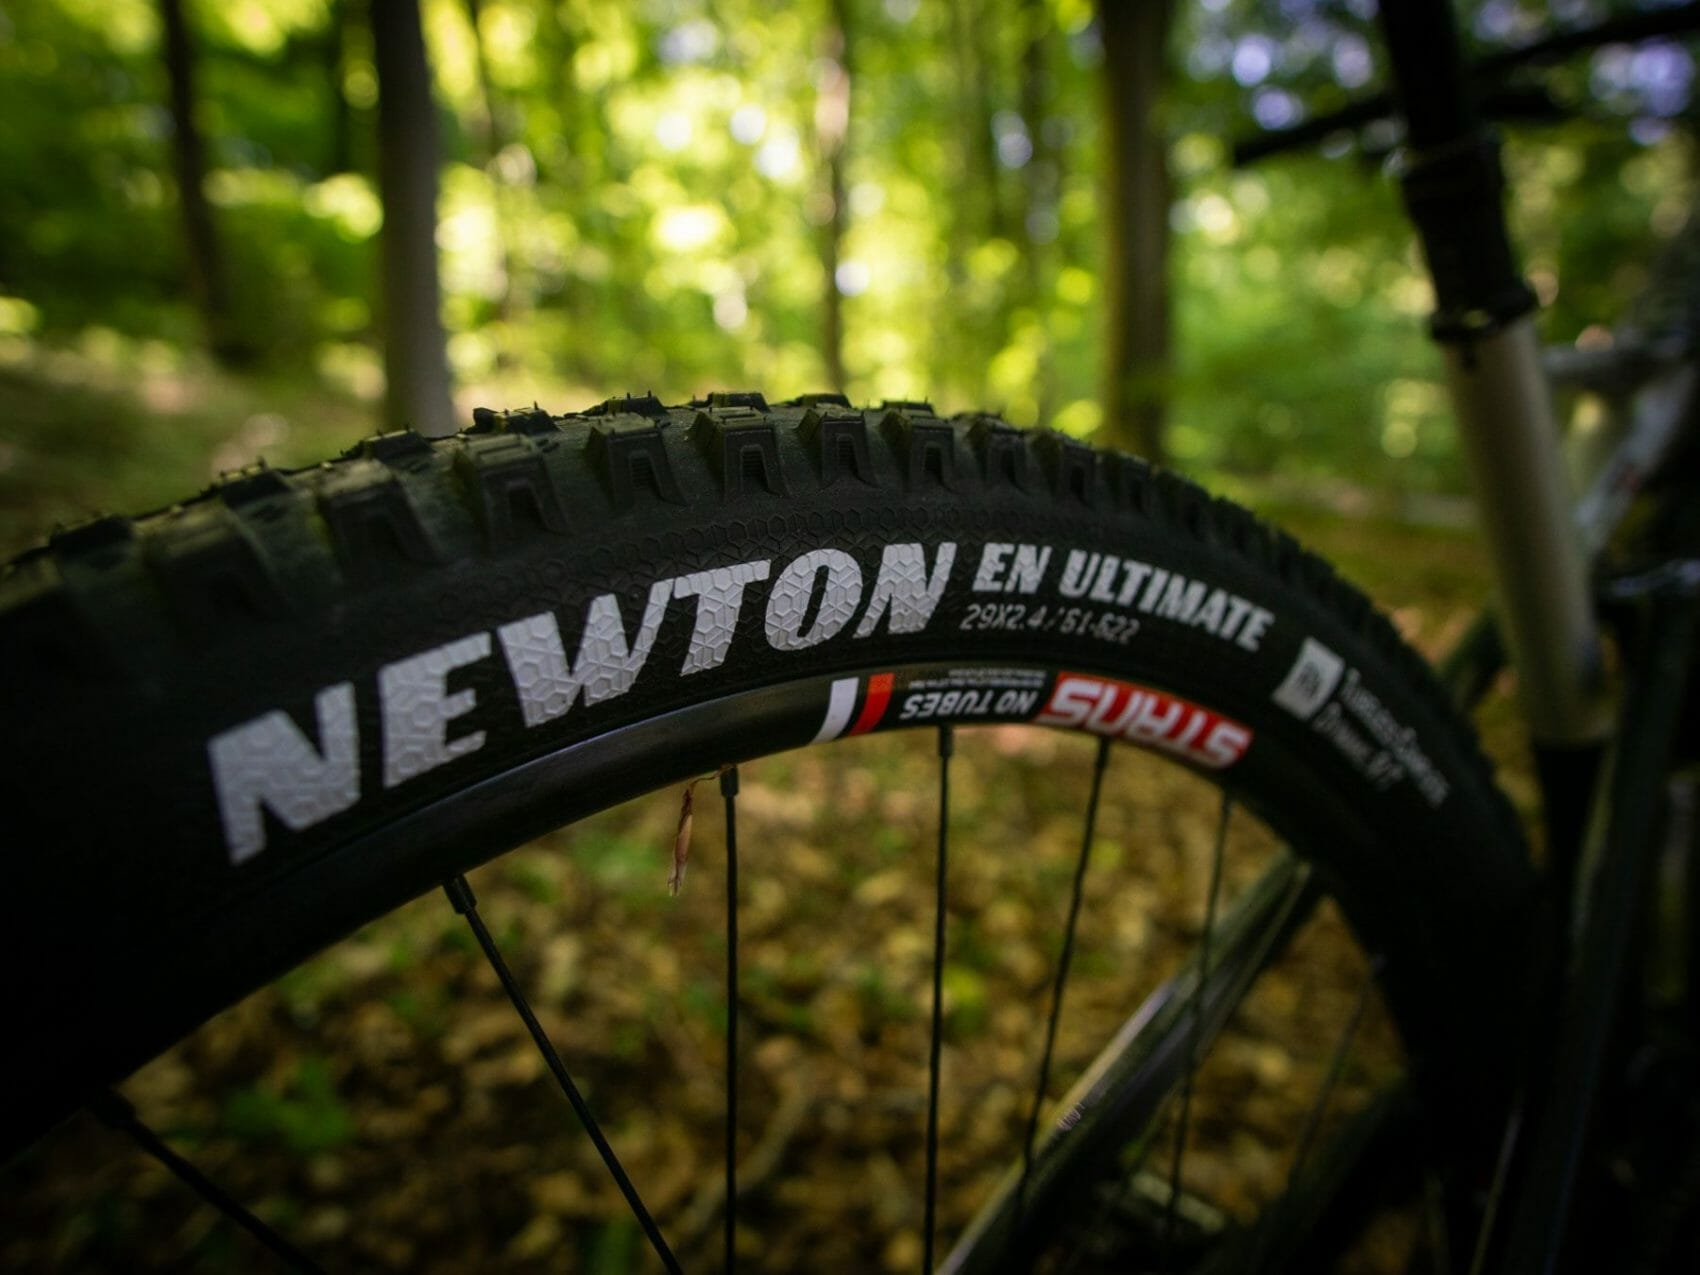 Poll: Which MTB Tyre Brand will you buy next